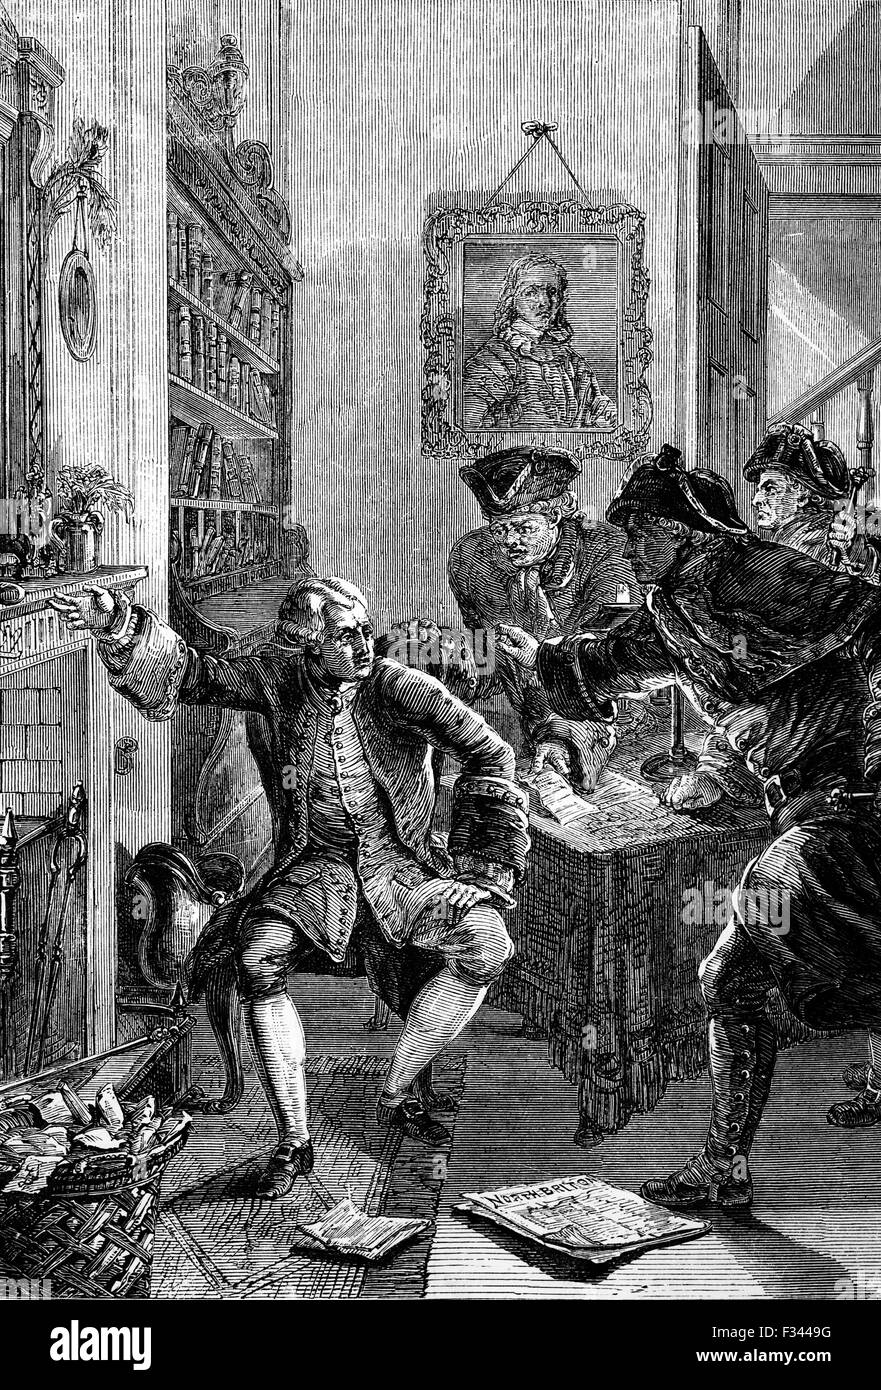 John Wilkes (1725 – 1797), an English radical, journalist, and politician, was threatened with arrest after satIrising - Stock Image